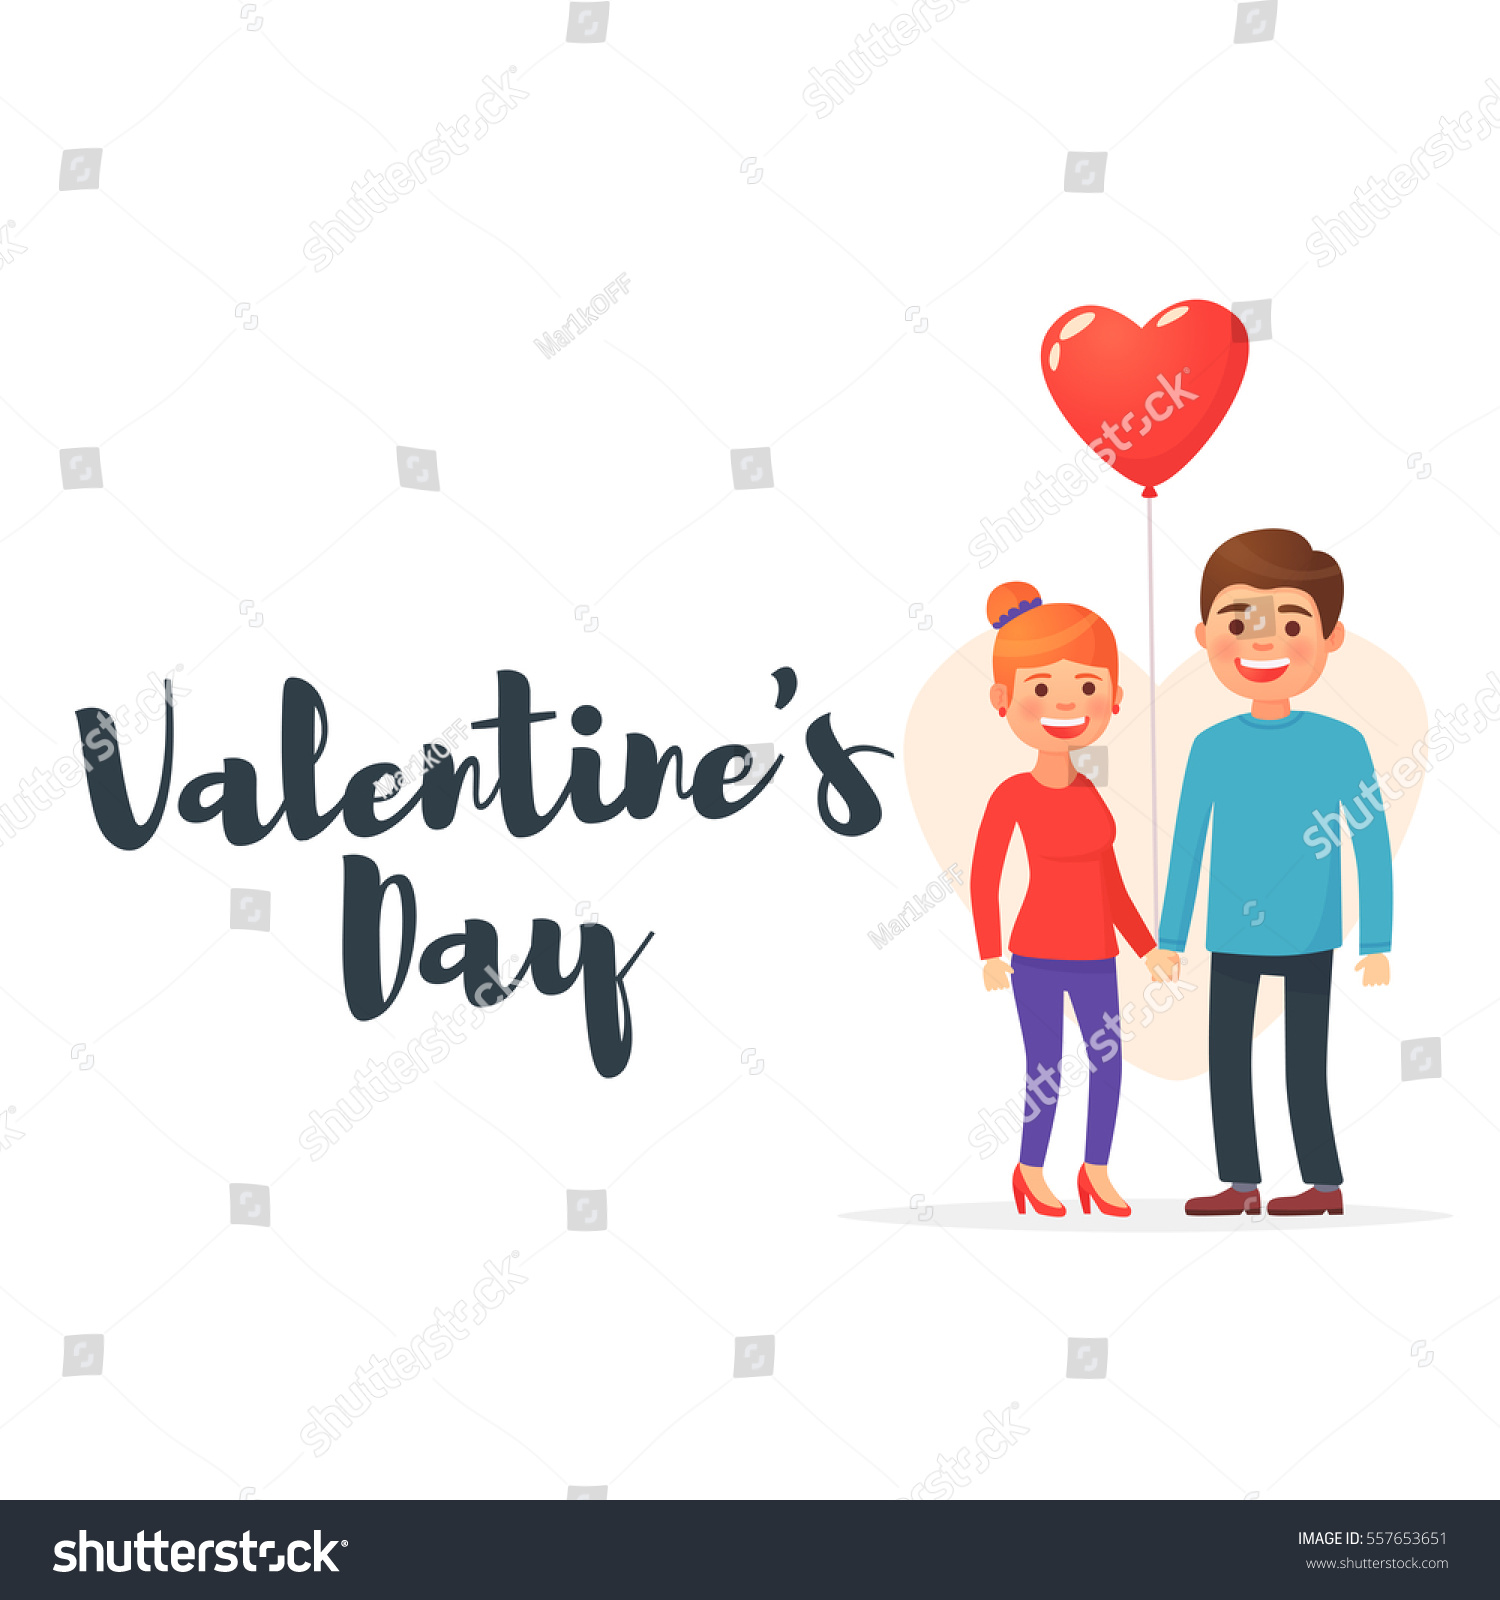 Valentines Day Cute Couple Love Day Stock Vector Royalty Free